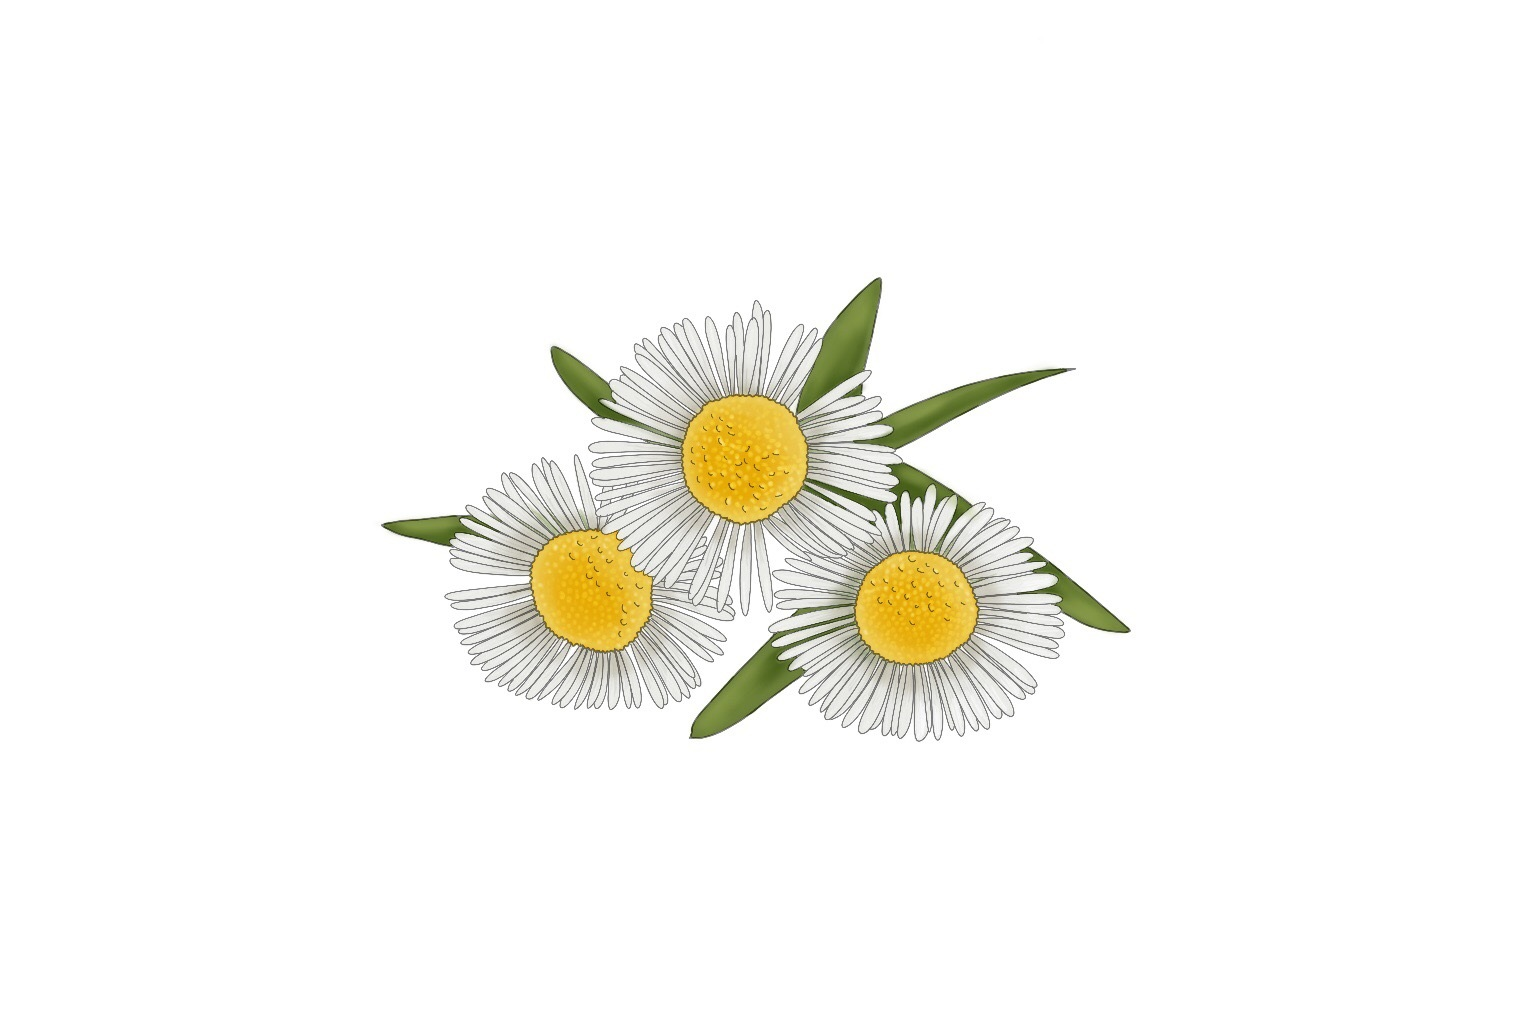 Chamomile Extract - A botanical extract known for its calming properties. Just like chamomile tea, is best to drink at bedtime and helps to soothe an upset stomach. It is in the Clay Mask to soothe the skin and calm the inflammation of a blemish.